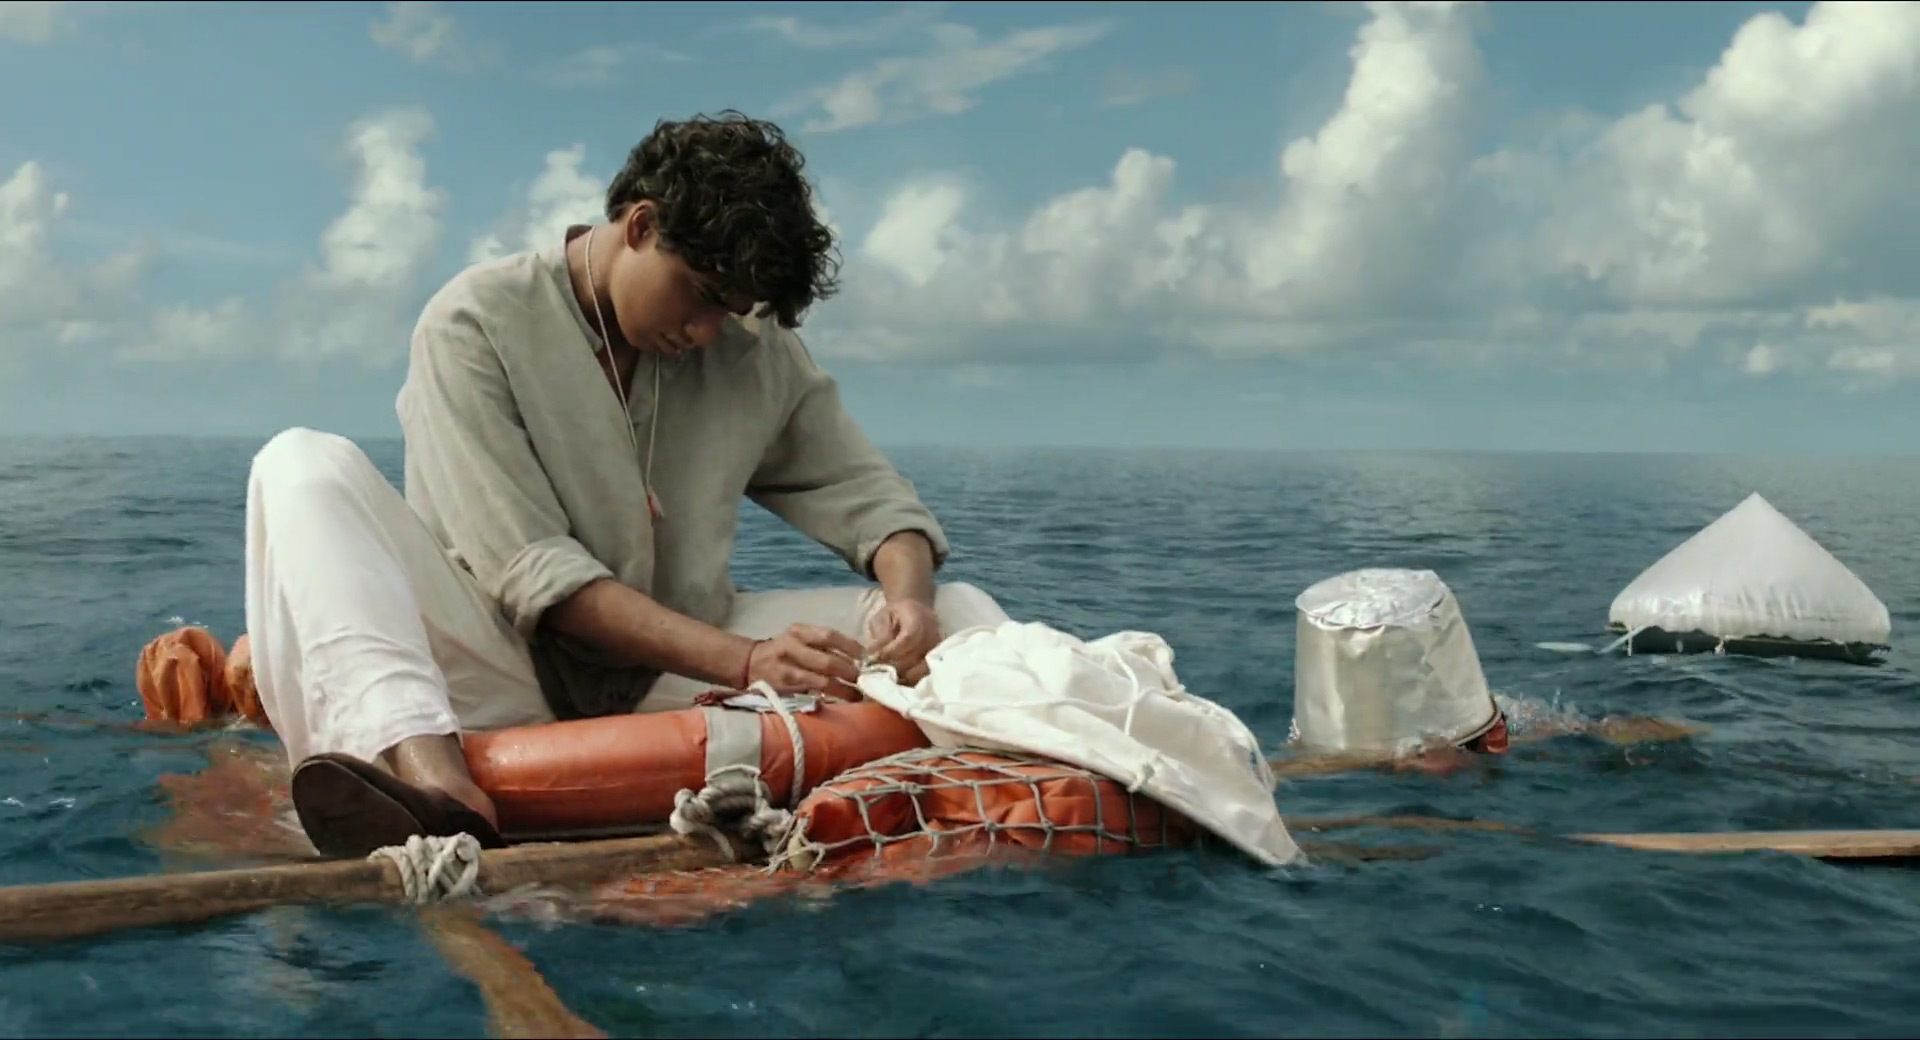 Life of pi 280 for Life of pi characterization